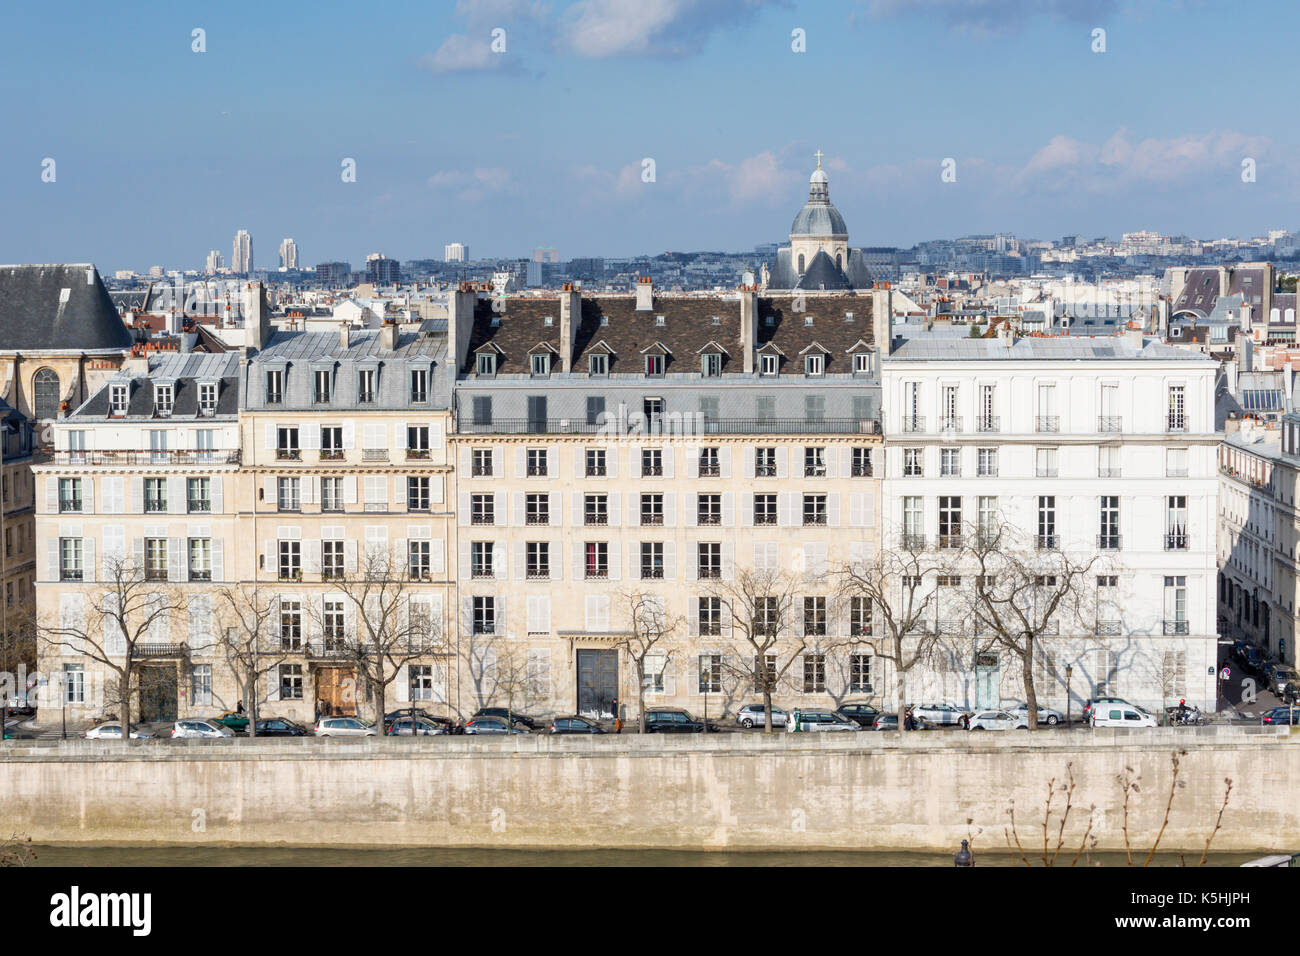 View of apartment buildings on Île Saint-Louis from the roof of the Arab World Institute by the Pont de Sully in Paris - Stock Image